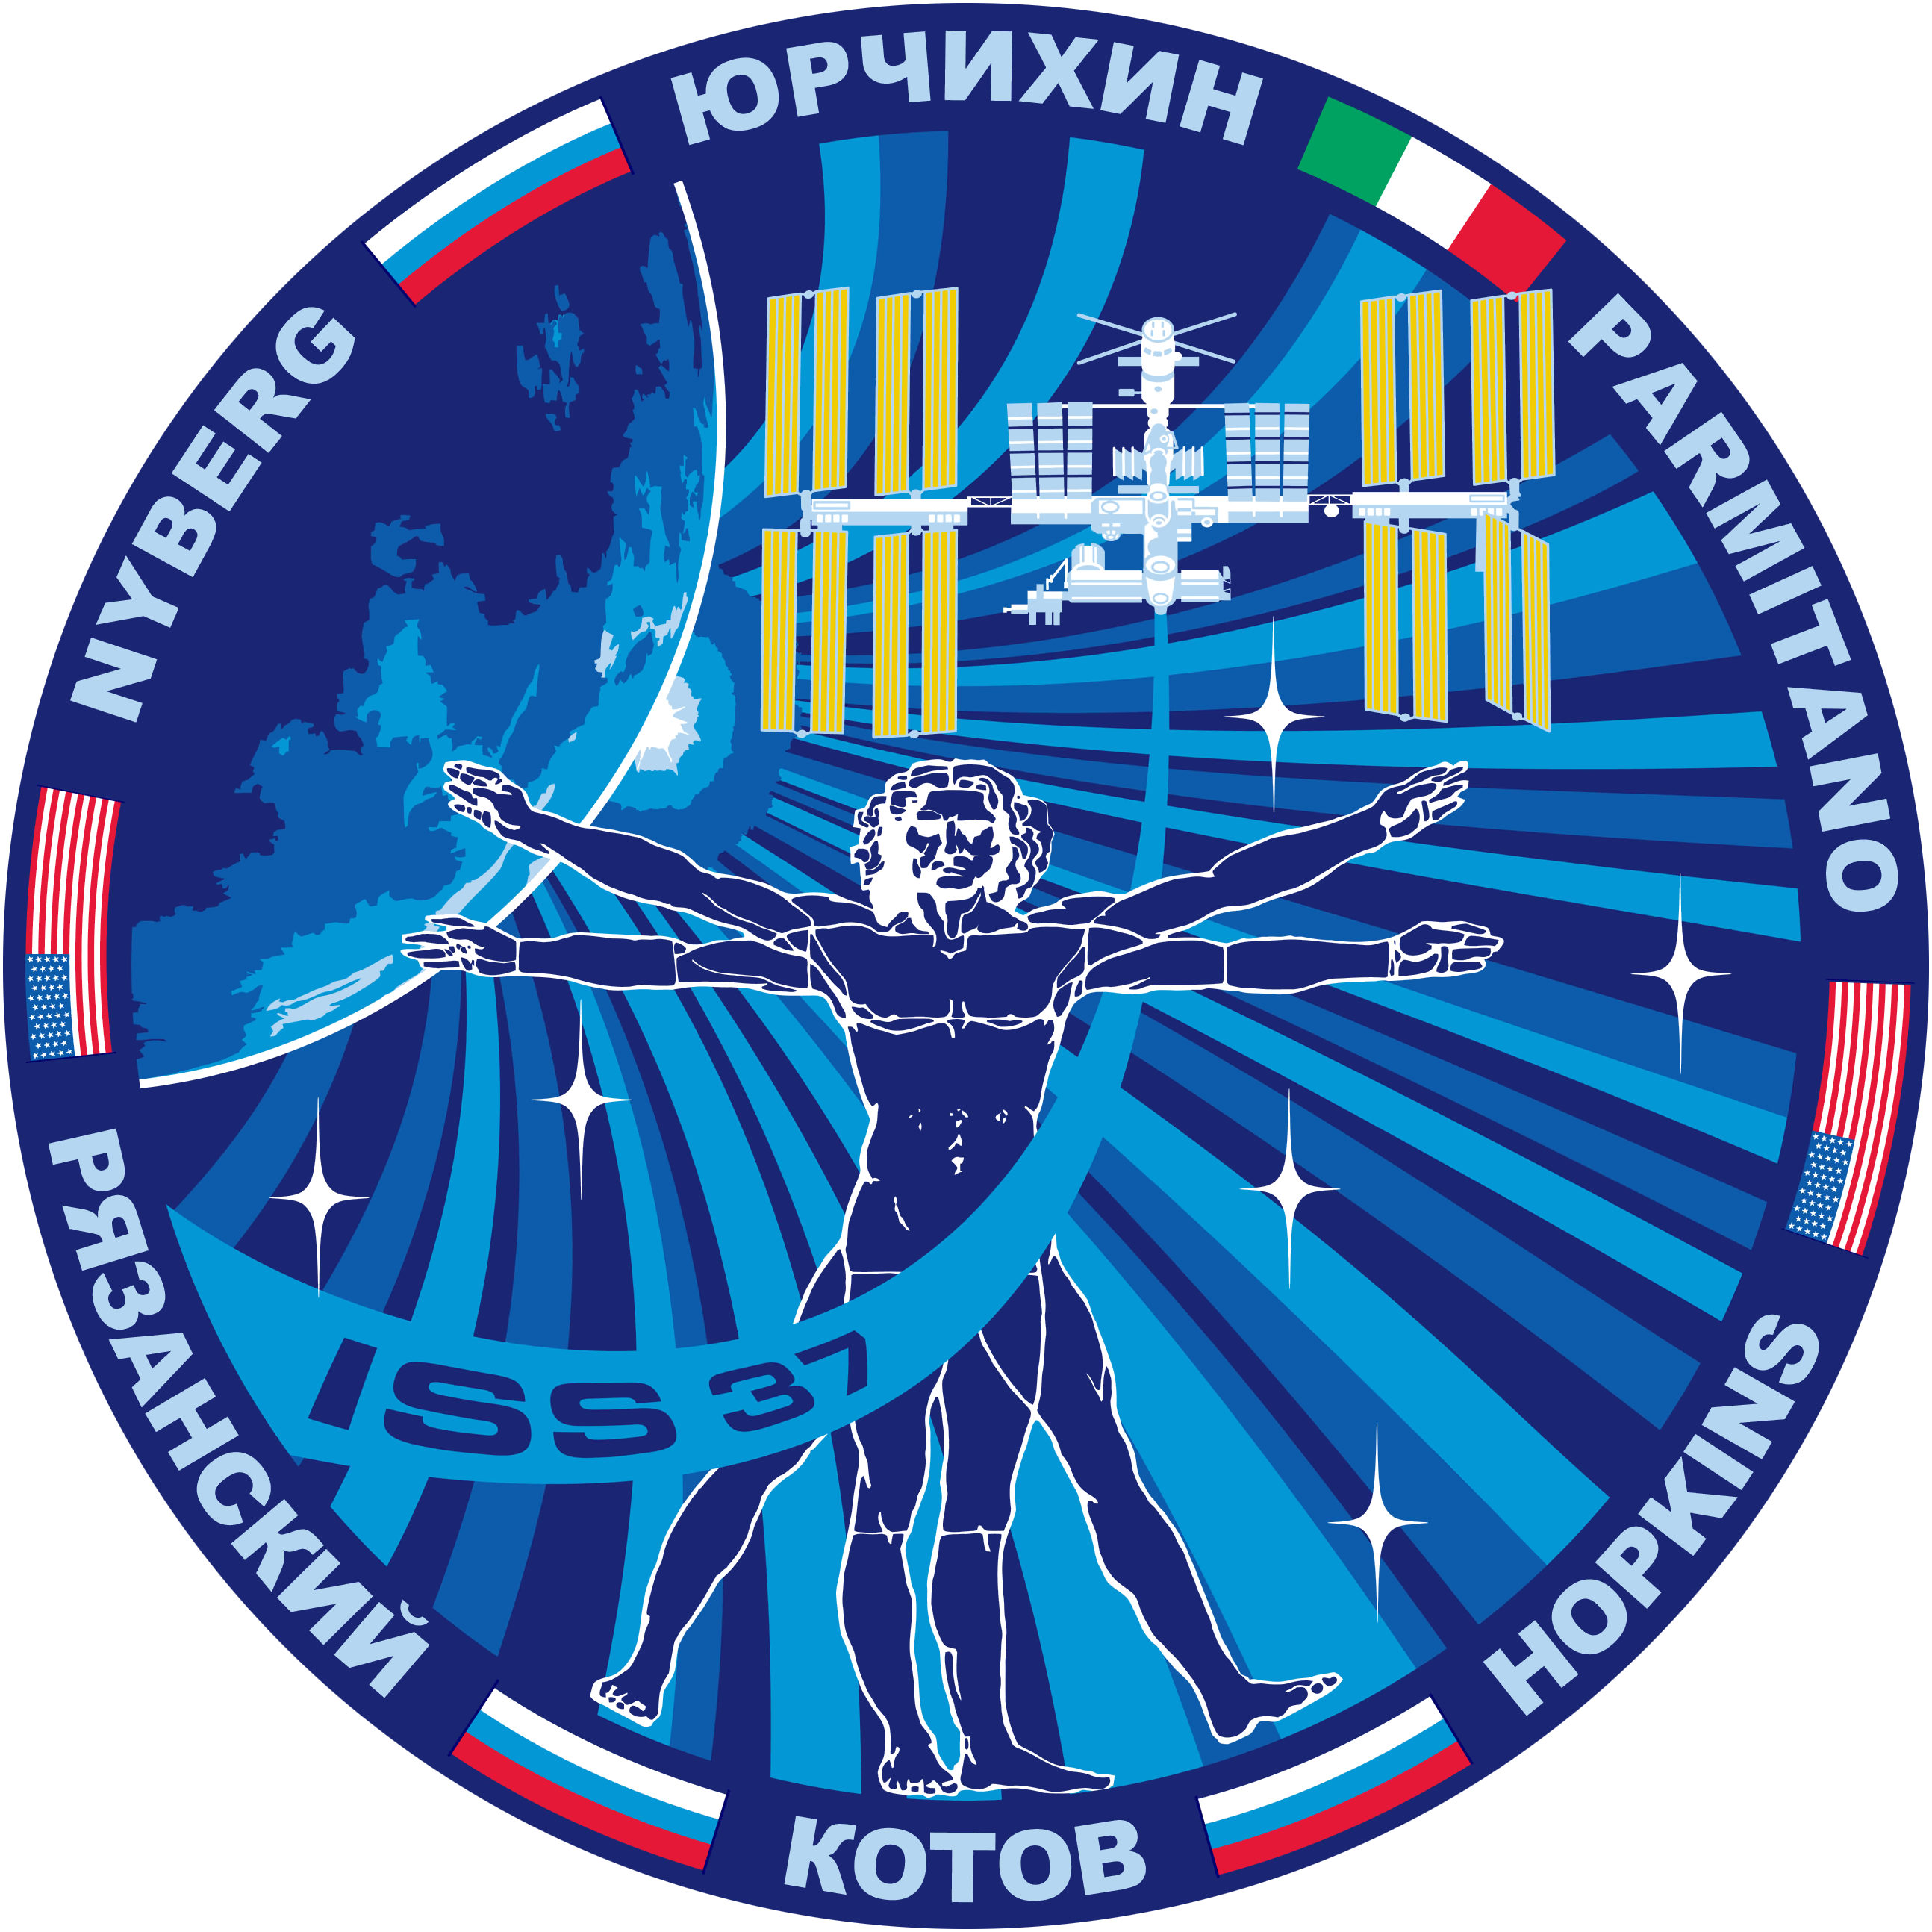 iss expedition 37 - photo #2